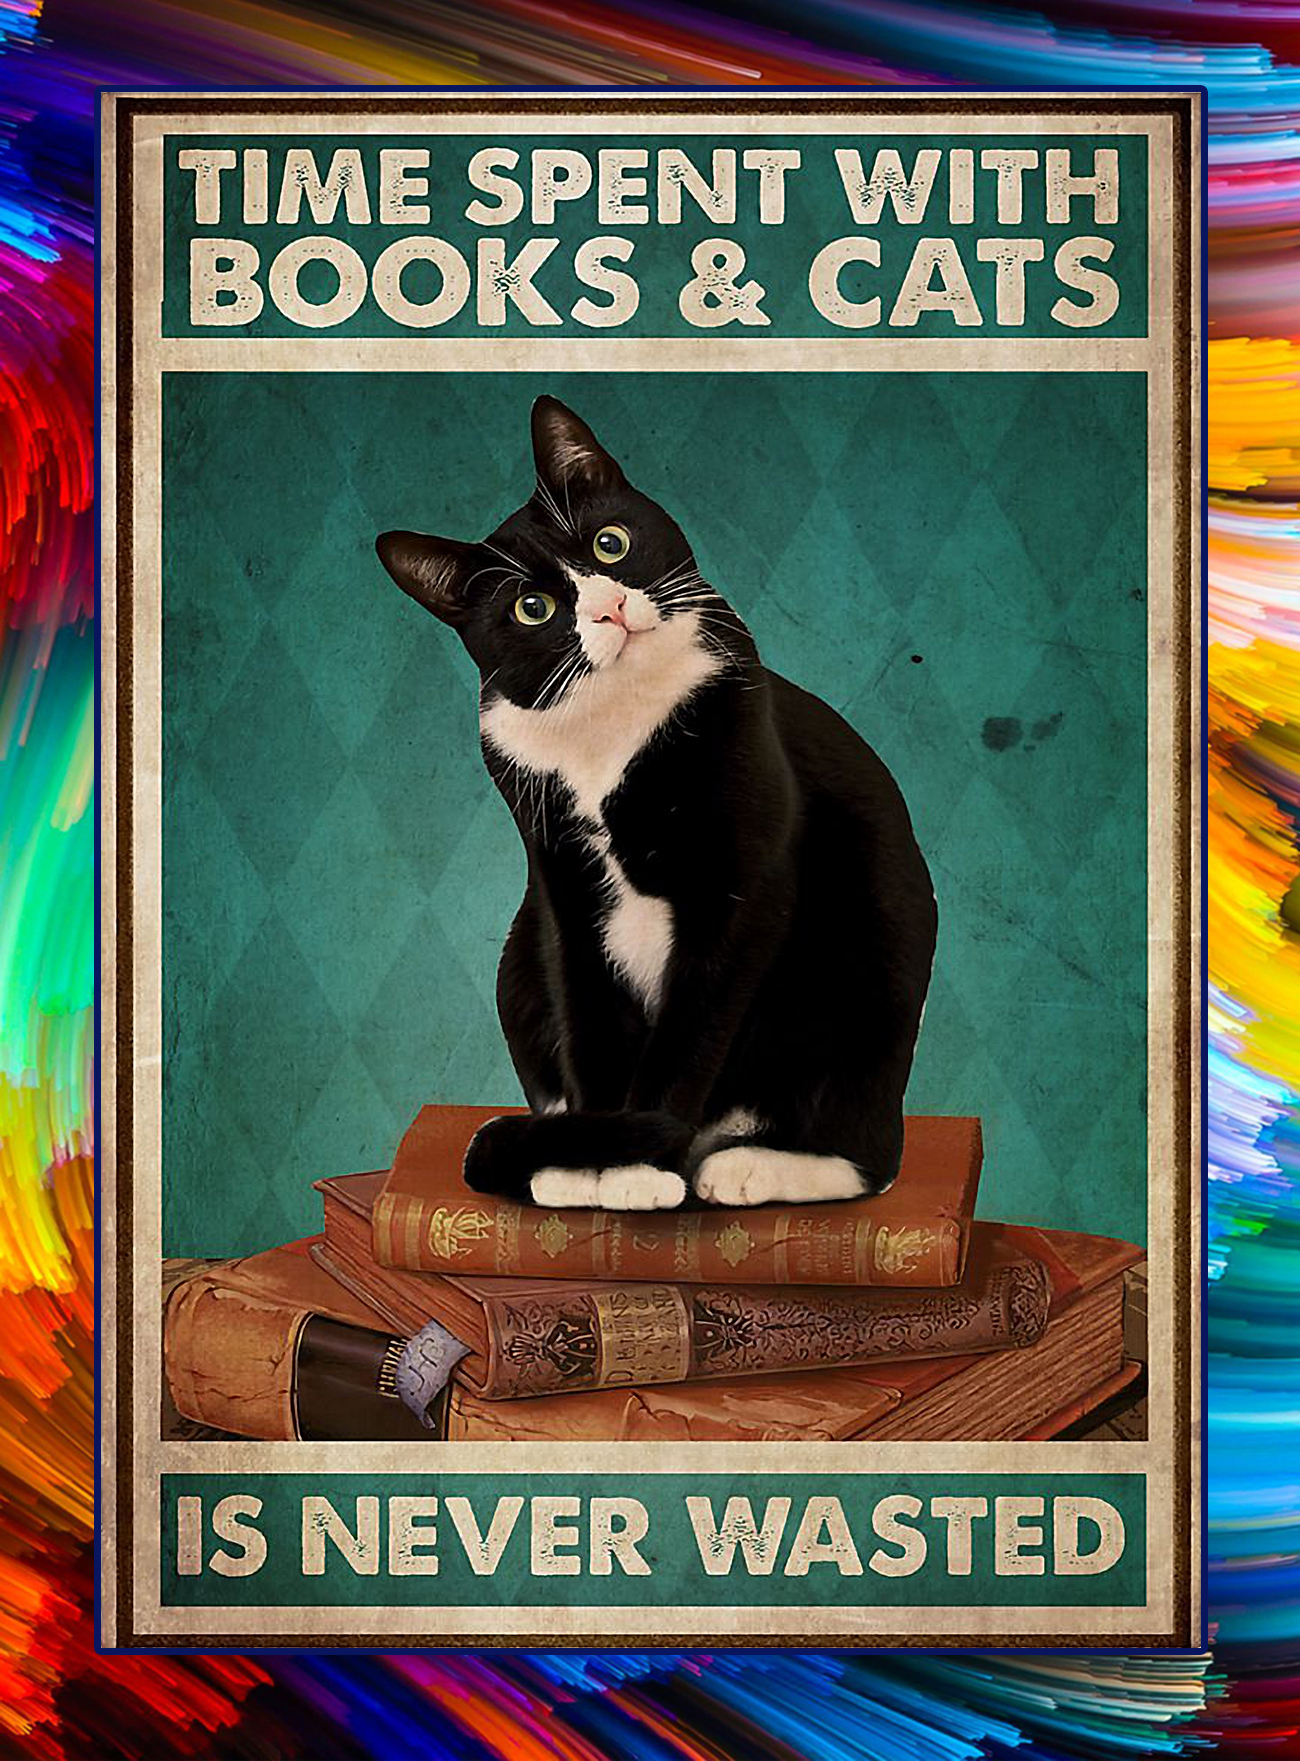 Time spent with books and cats is never wasted poster - A4